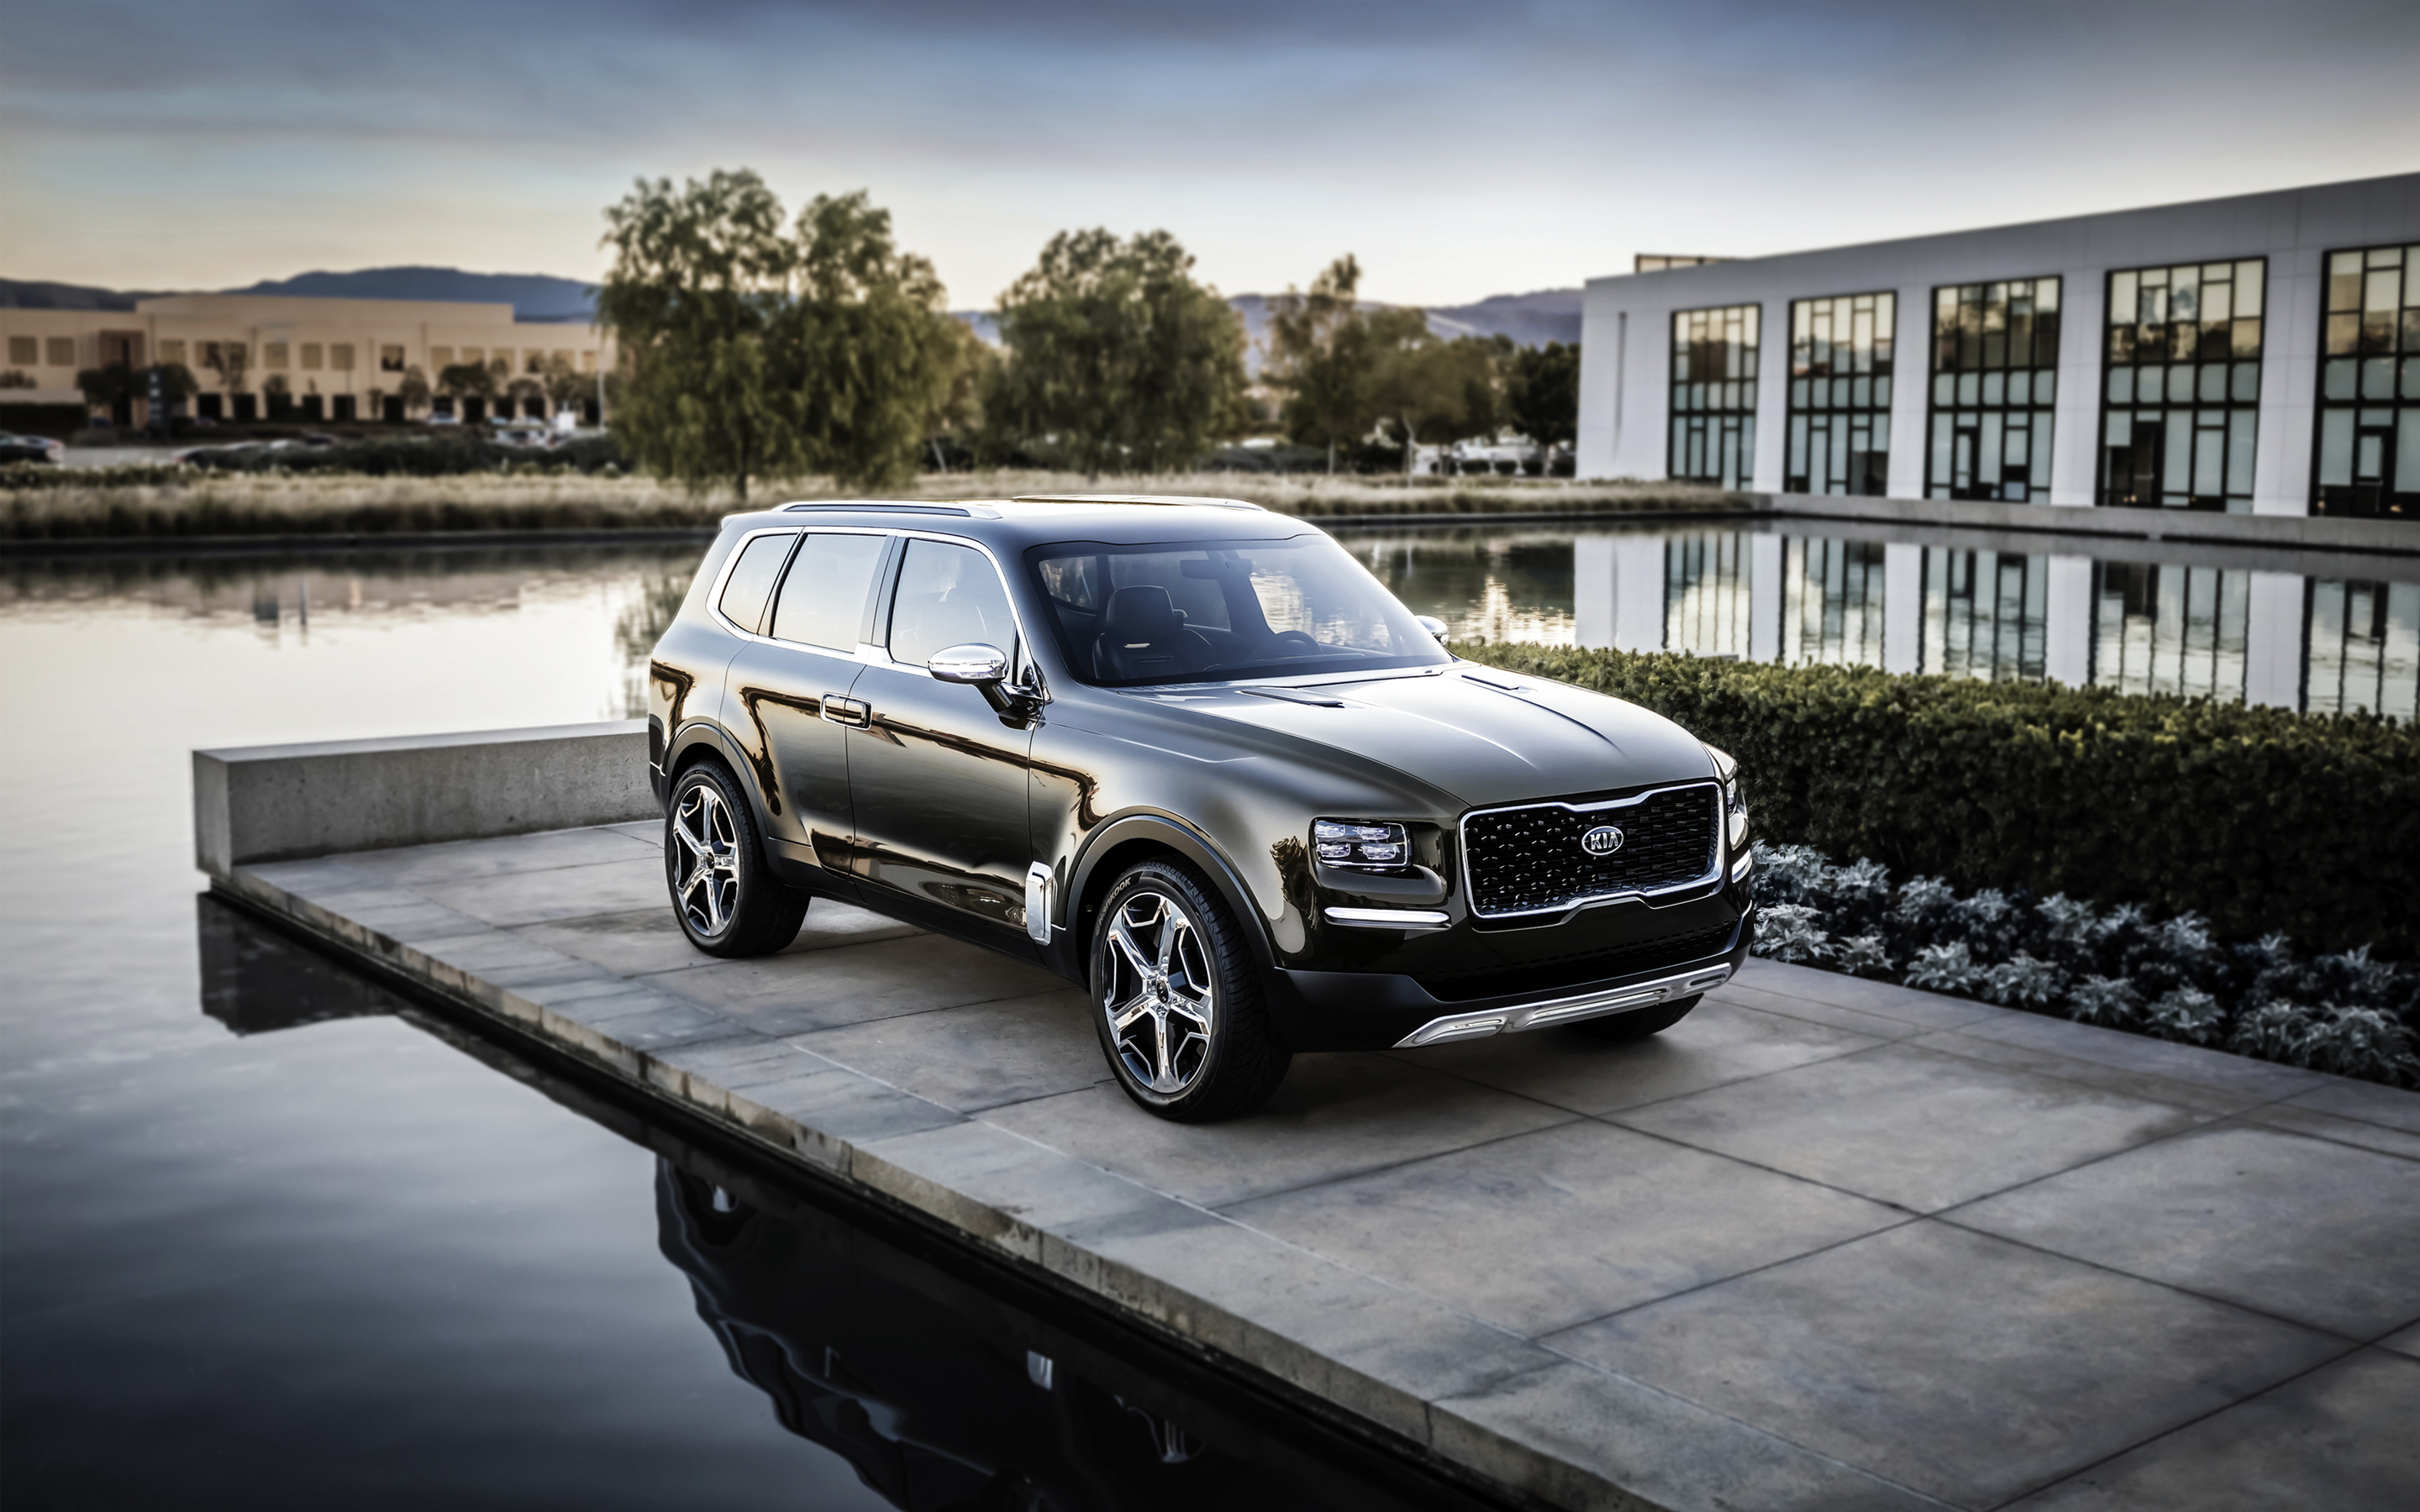 2016 Kia Telluride Concept Wallpaper HD Car Wallpapers ID 6117 2880x1800